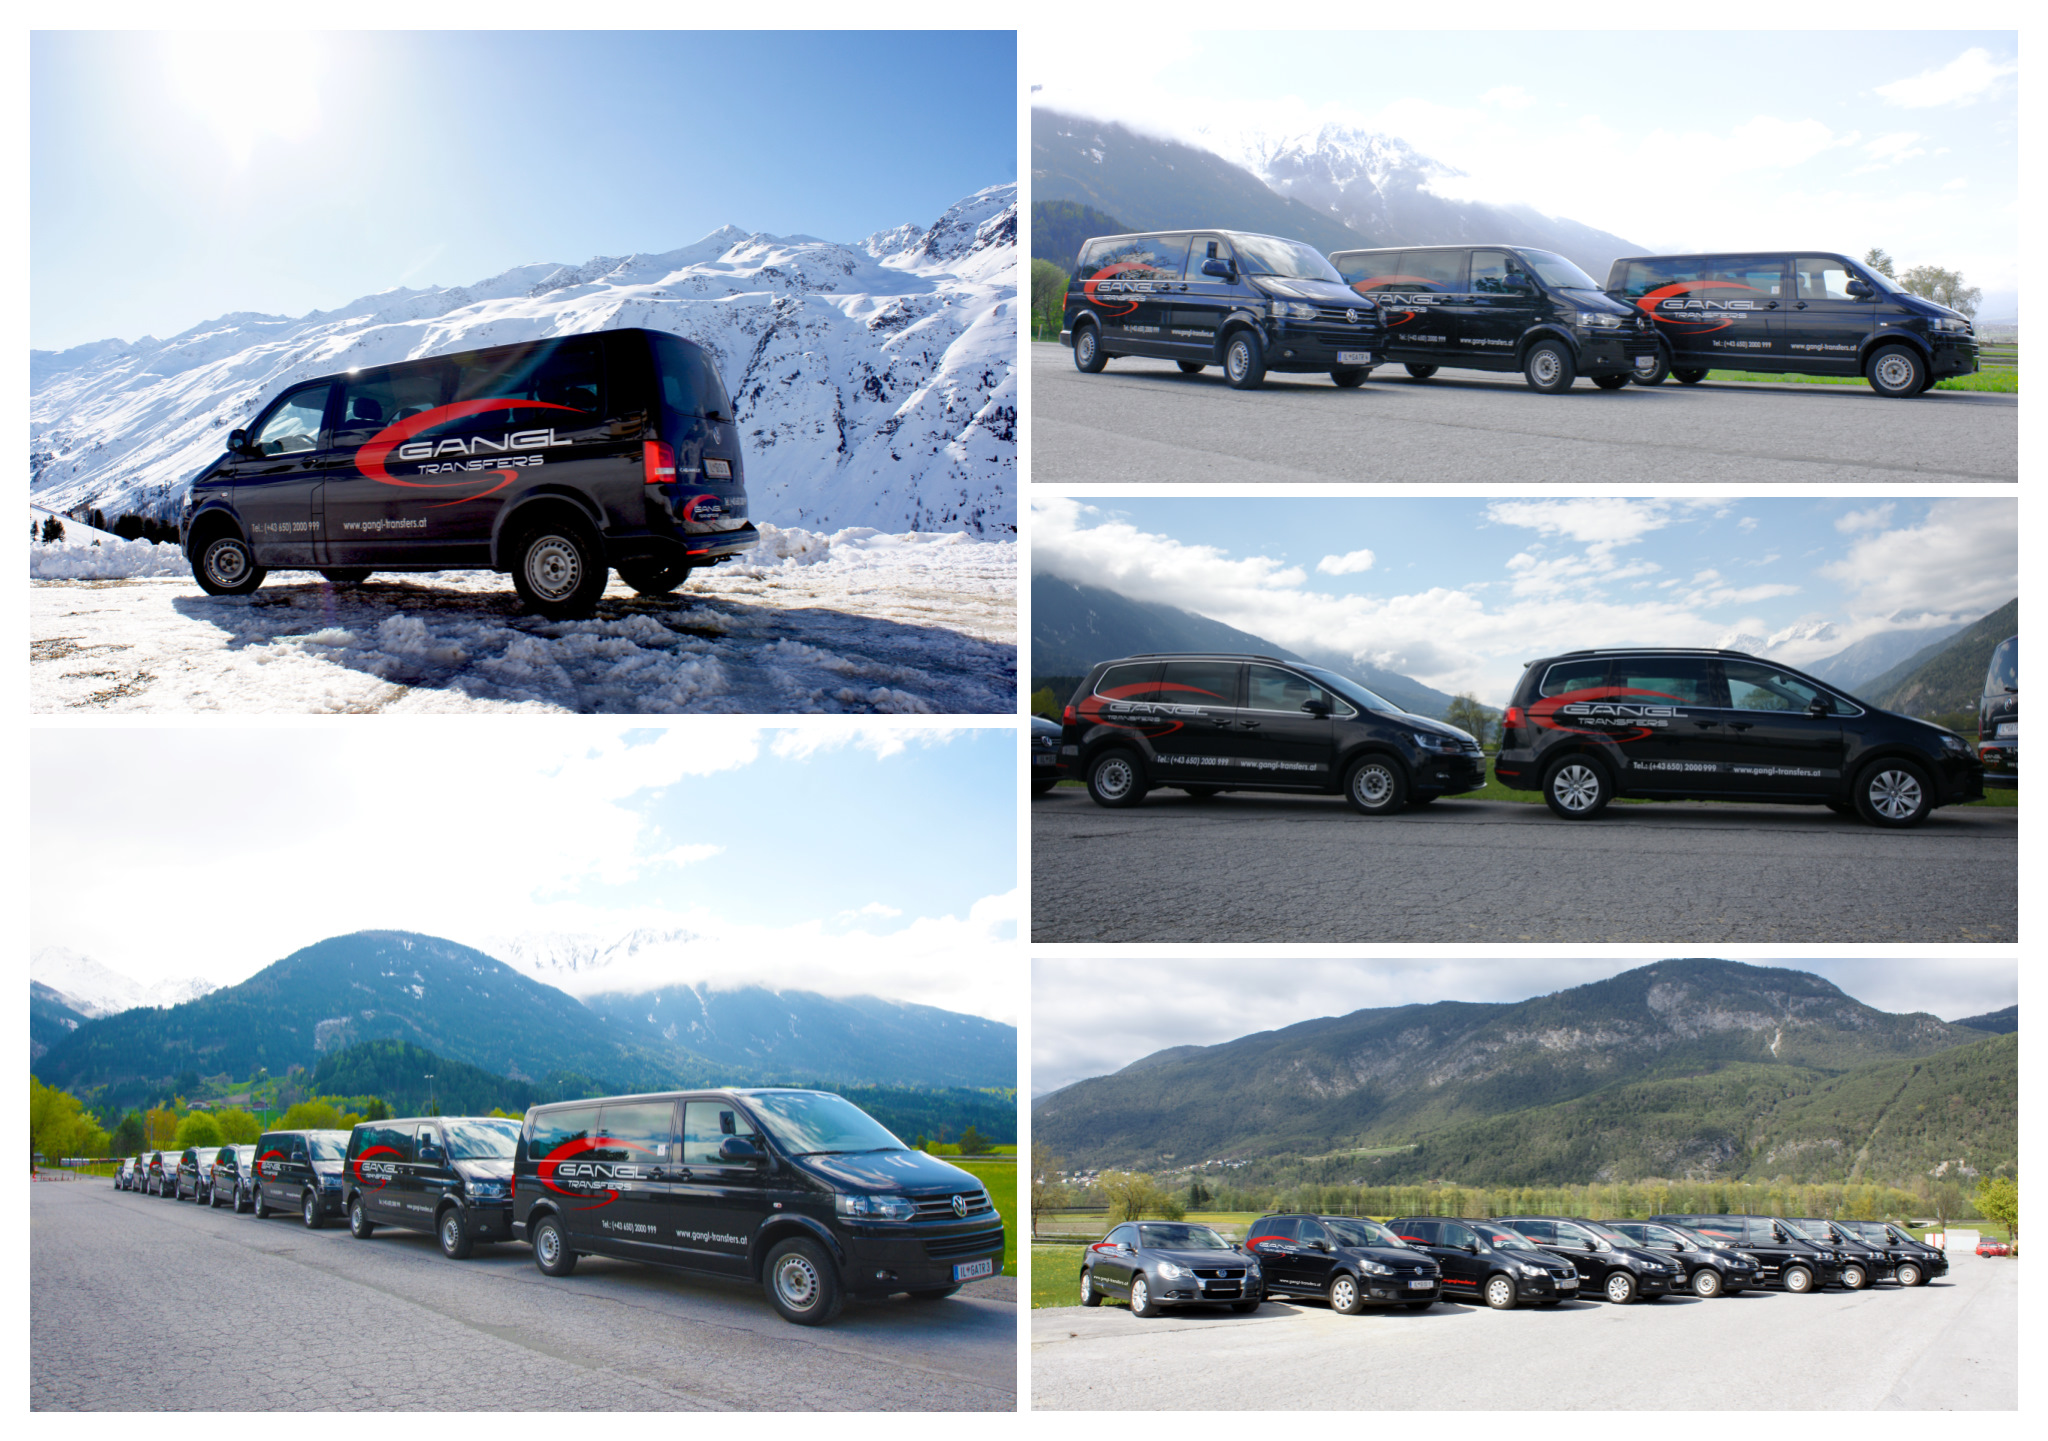 Airport Innsbruck Taxi - GANGL TRANSFERS fifth photo.